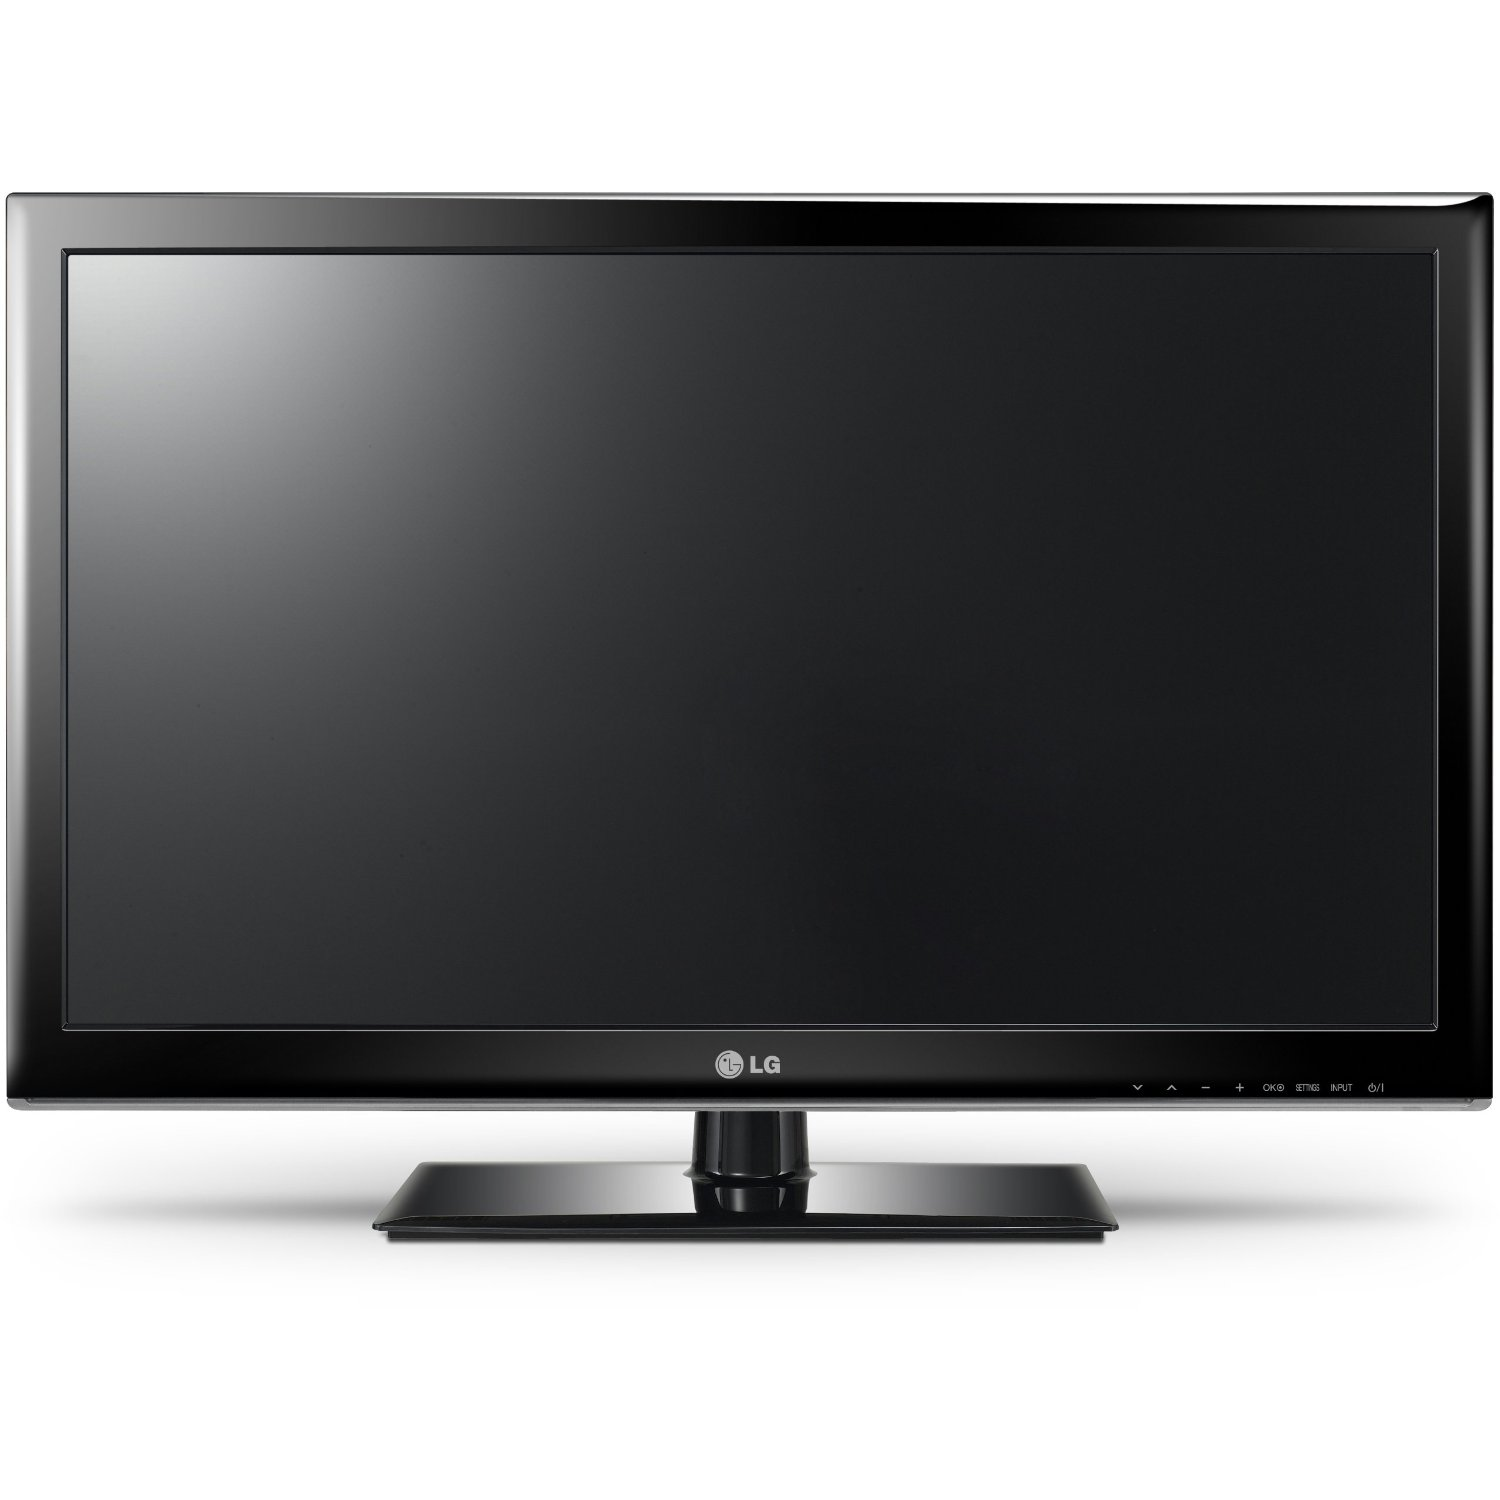 lg 42ls340s 42 led backlight fernseher mit triple tuner f r 399. Black Bedroom Furniture Sets. Home Design Ideas